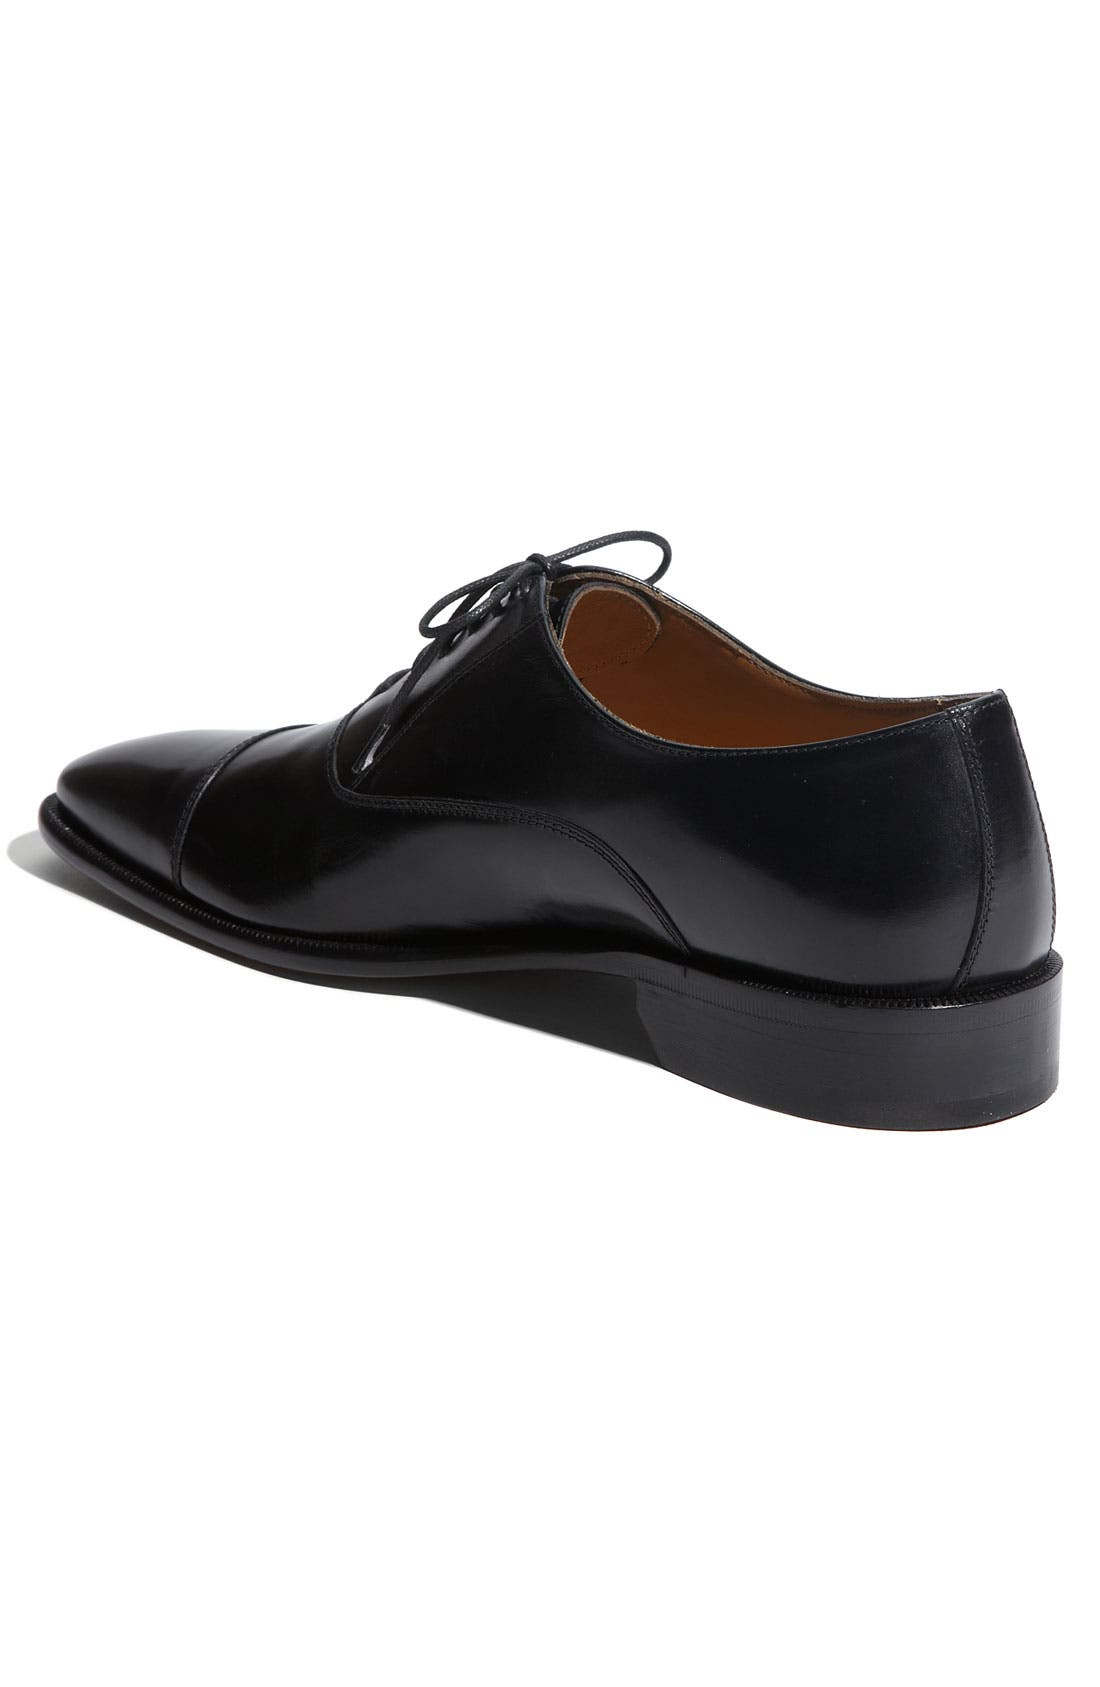 Alternate Image 2  - John W. Nordstrom® 'Lido' Oxford